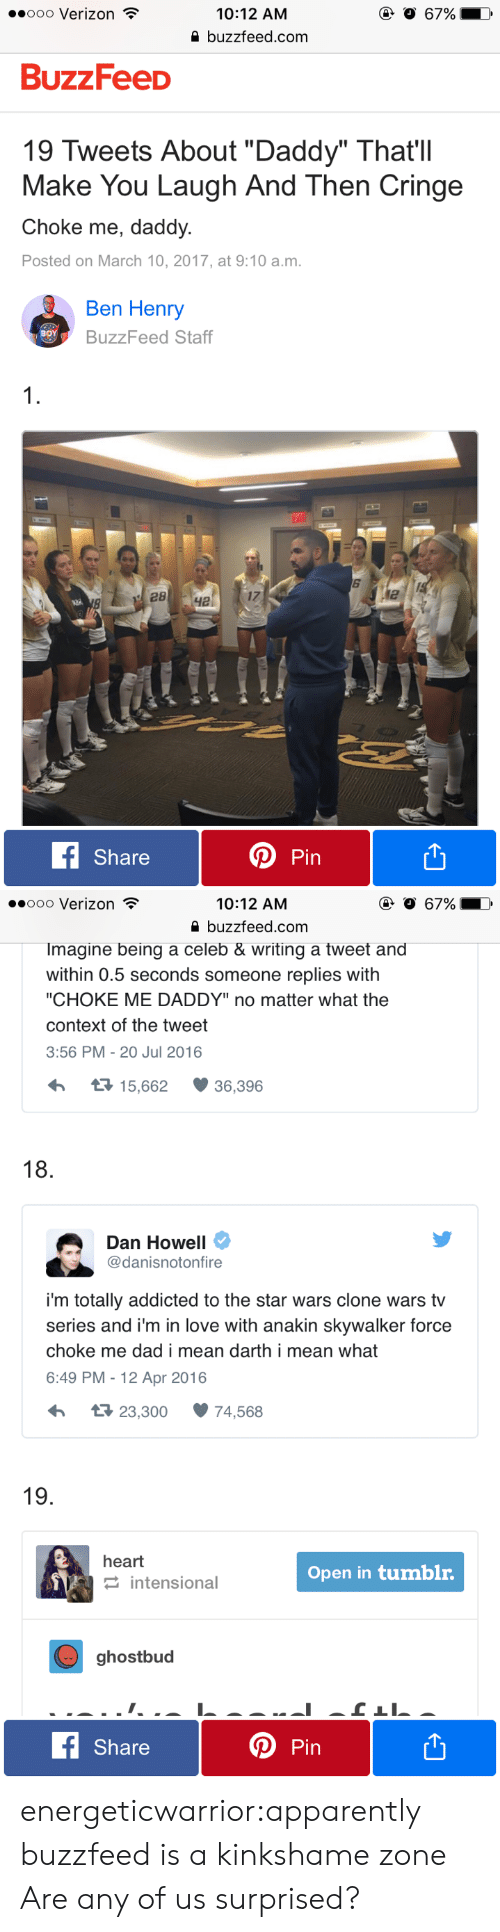 """clone wars: .ooo Verizon  @ O 67%  10:12 AM  buzzfeed.com  BuzzFeeD  19 Tweets About """"Daddy"""" That'll  Make You Laugh And Then Cringe  Choke me, daddy  Posted on March 10, 2017, at 9:10 a.m.  Ben Henry  вOY  BuzzFeed Staff  1  28  ча  fShare  Pin   ooo Verizon  @ O 67%  10:12 AM  buzzfeed.com  Imagine being a celeb & writing a tweet and  within 0.5 seconds someone replies with  """"CHOKE ME DADDY"""" no matter what the  context of the tweet  3:56 PM -20 Jul 2016  t 15,662  36,396  18  Dan Howell  @danisnotonfire  i'm totally addicted to the star wars clone wars tv  series and i'm in love with anakin skywalker force  choke me dad i mean darth i mean what  6:49 PM - 12 Apr 2016  t 23,300  74,568  19.  heart  Open in tumblr.  intensional  ghostbud  fShare  Pin energeticwarrior:apparently buzzfeed is a kinkshame zone  Are any of us surprised?"""